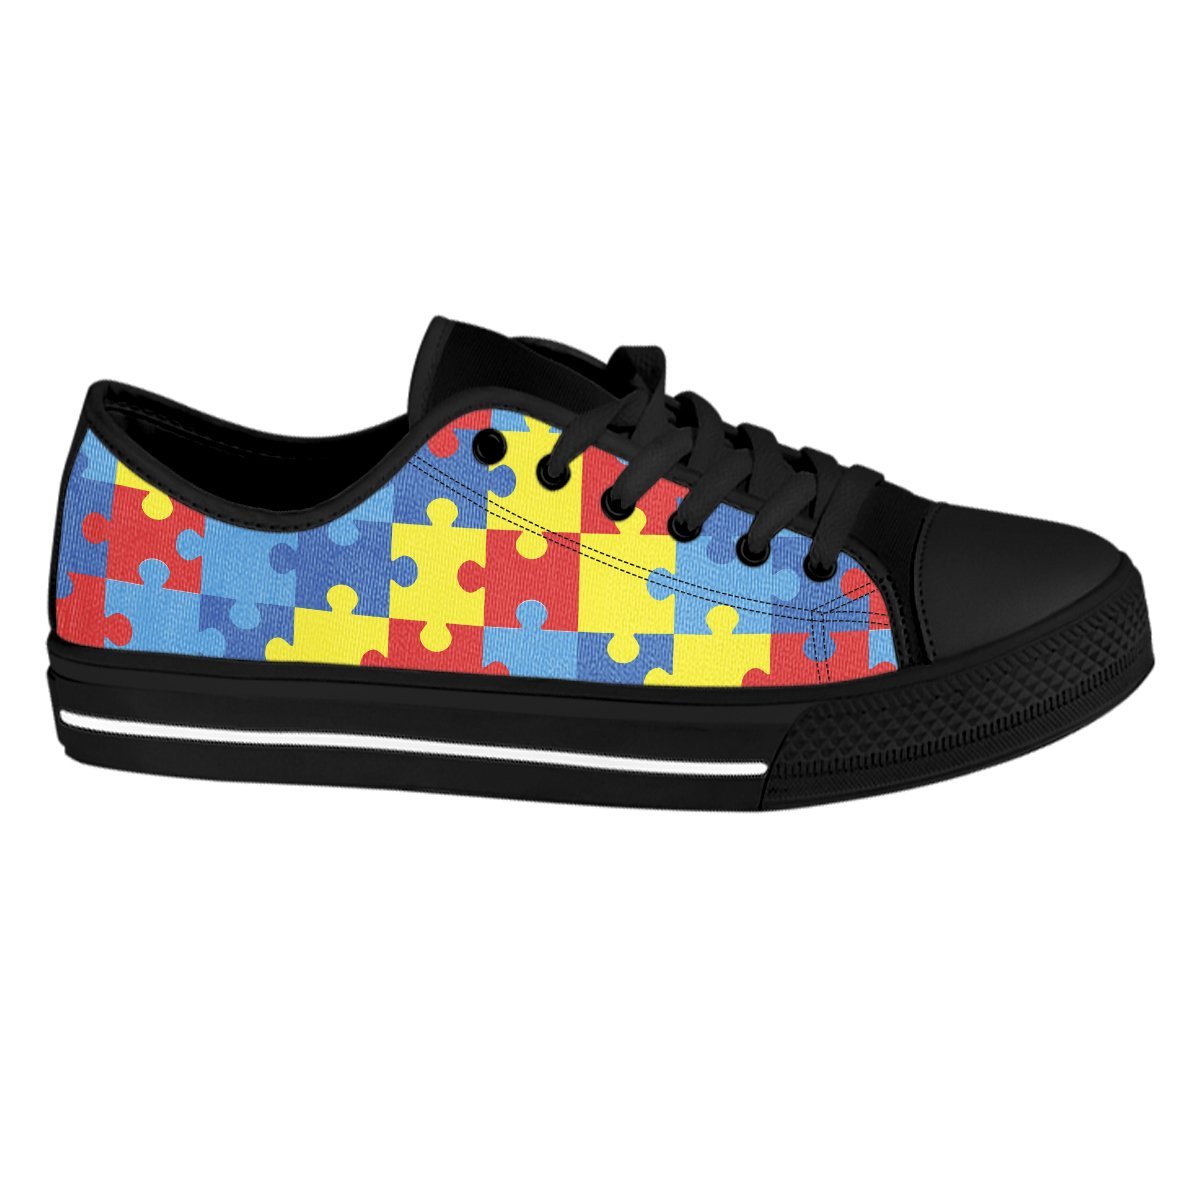 Gnarly Tees Women's Autism Awareness Shoes, Low Top, Black, Size 7.5 by Gnarly Tees (Image #1)